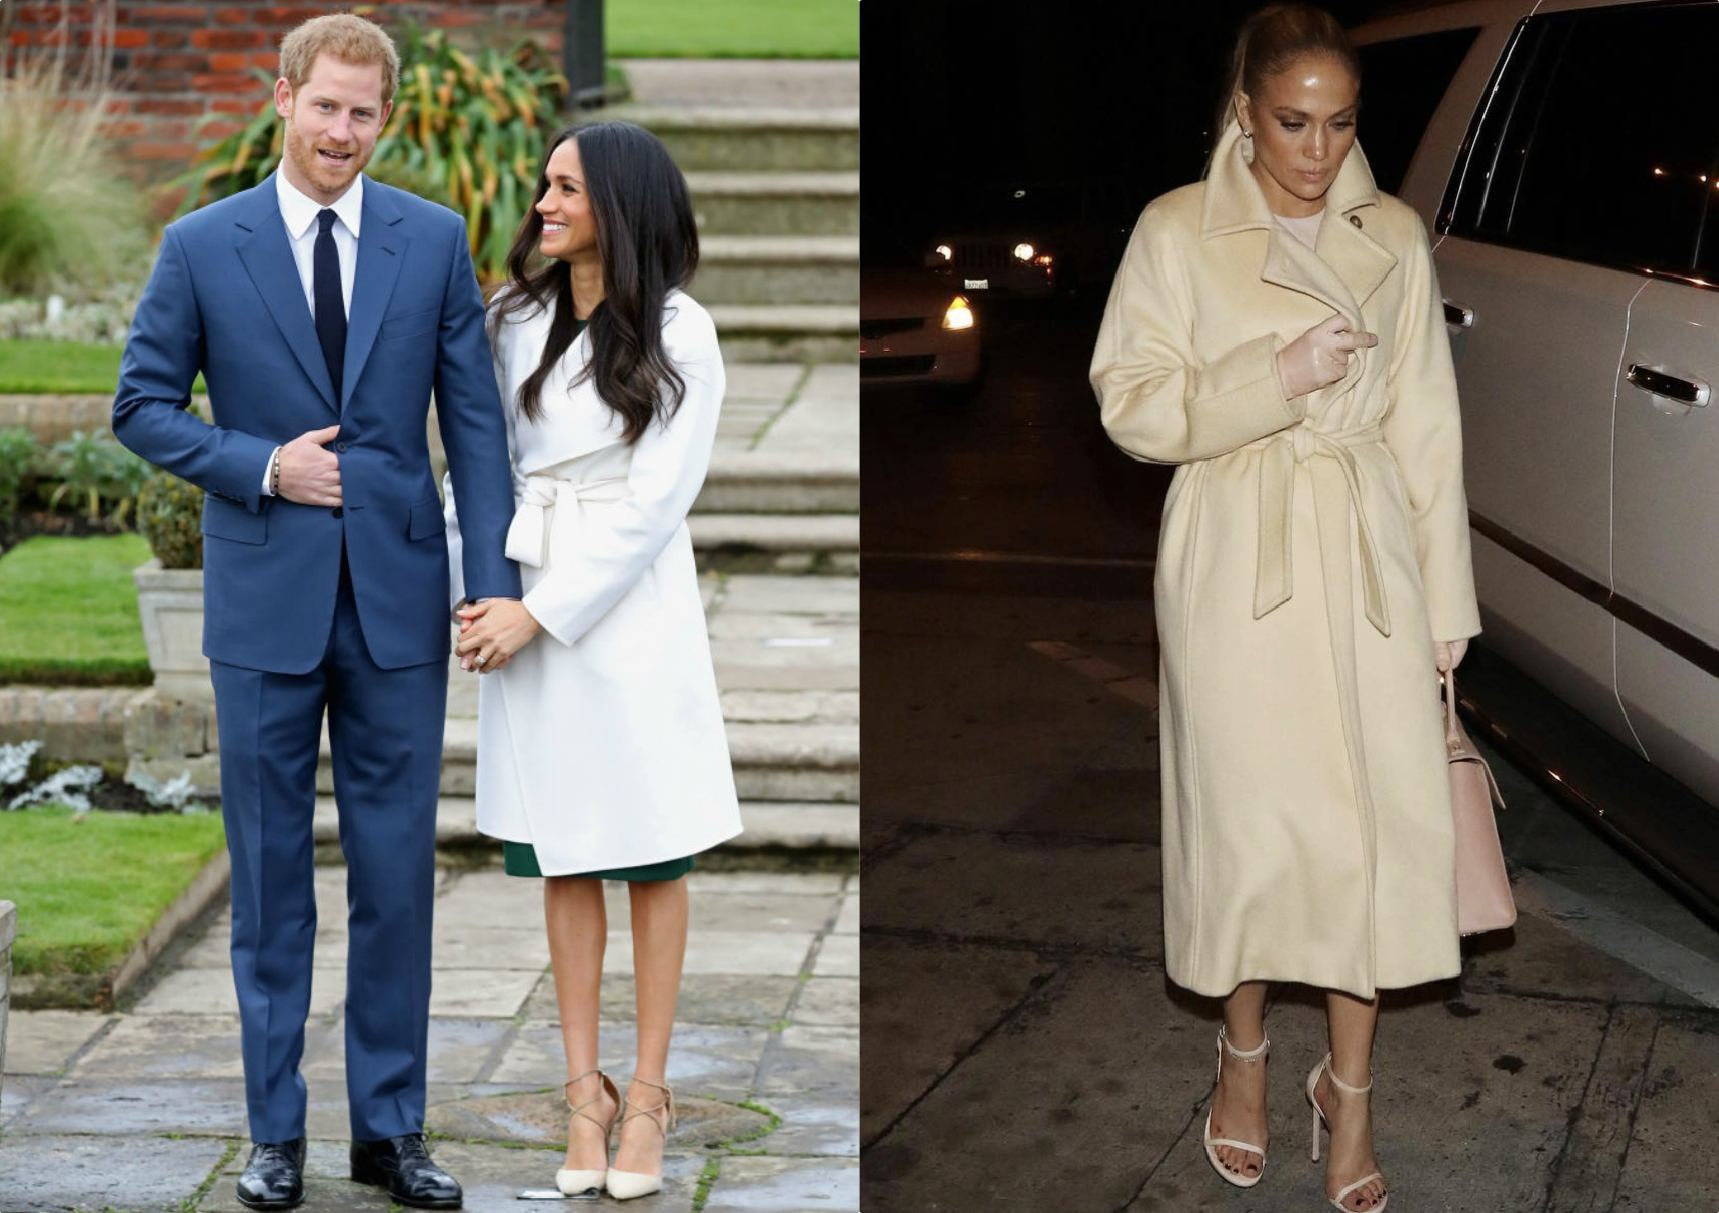 JLO Meghan Markle coat